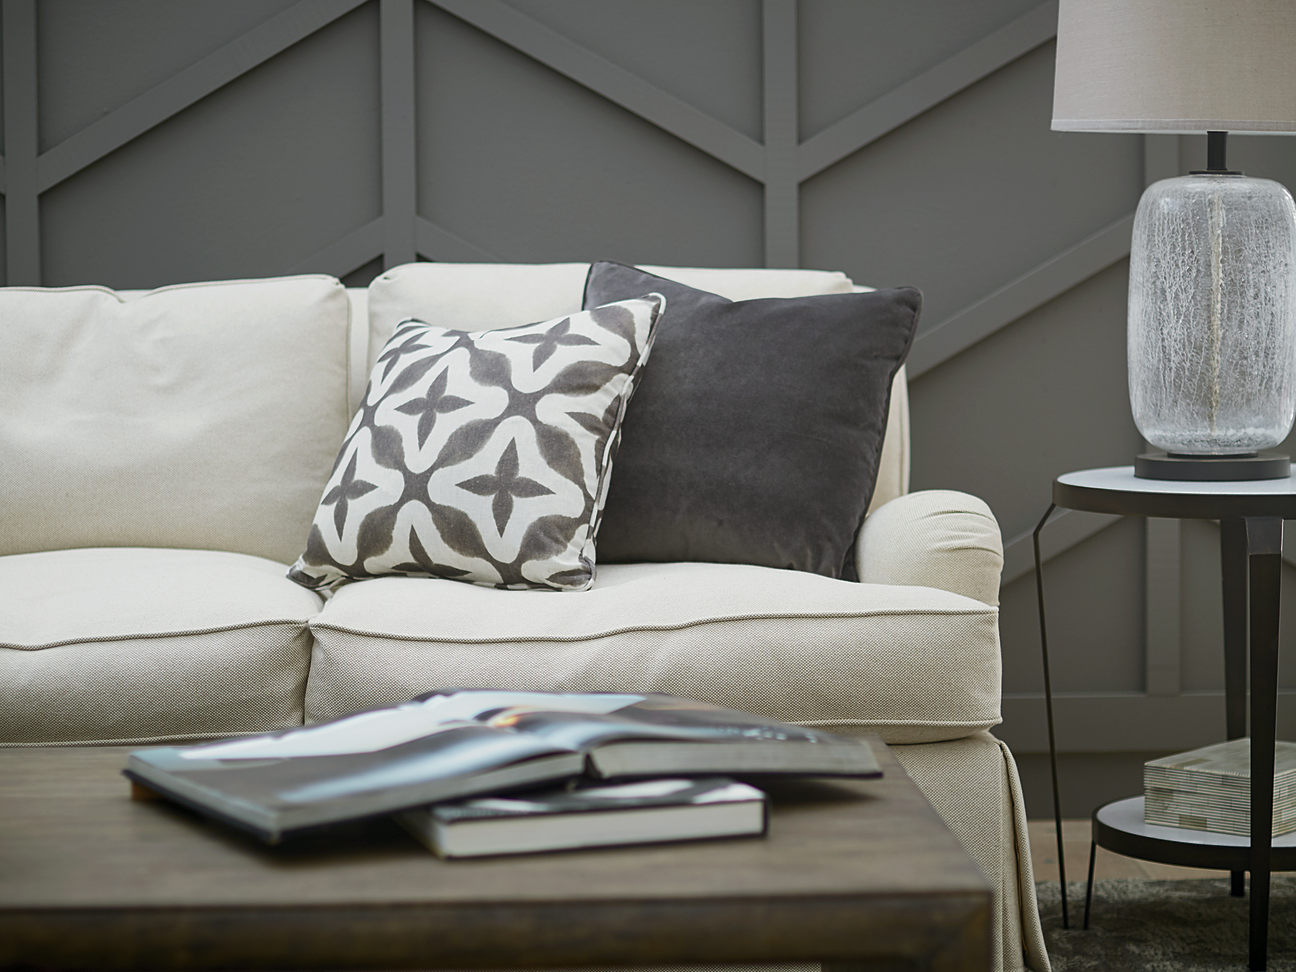 American Home Decor Stores: Color Series: Decorating With Sharkskin Gray